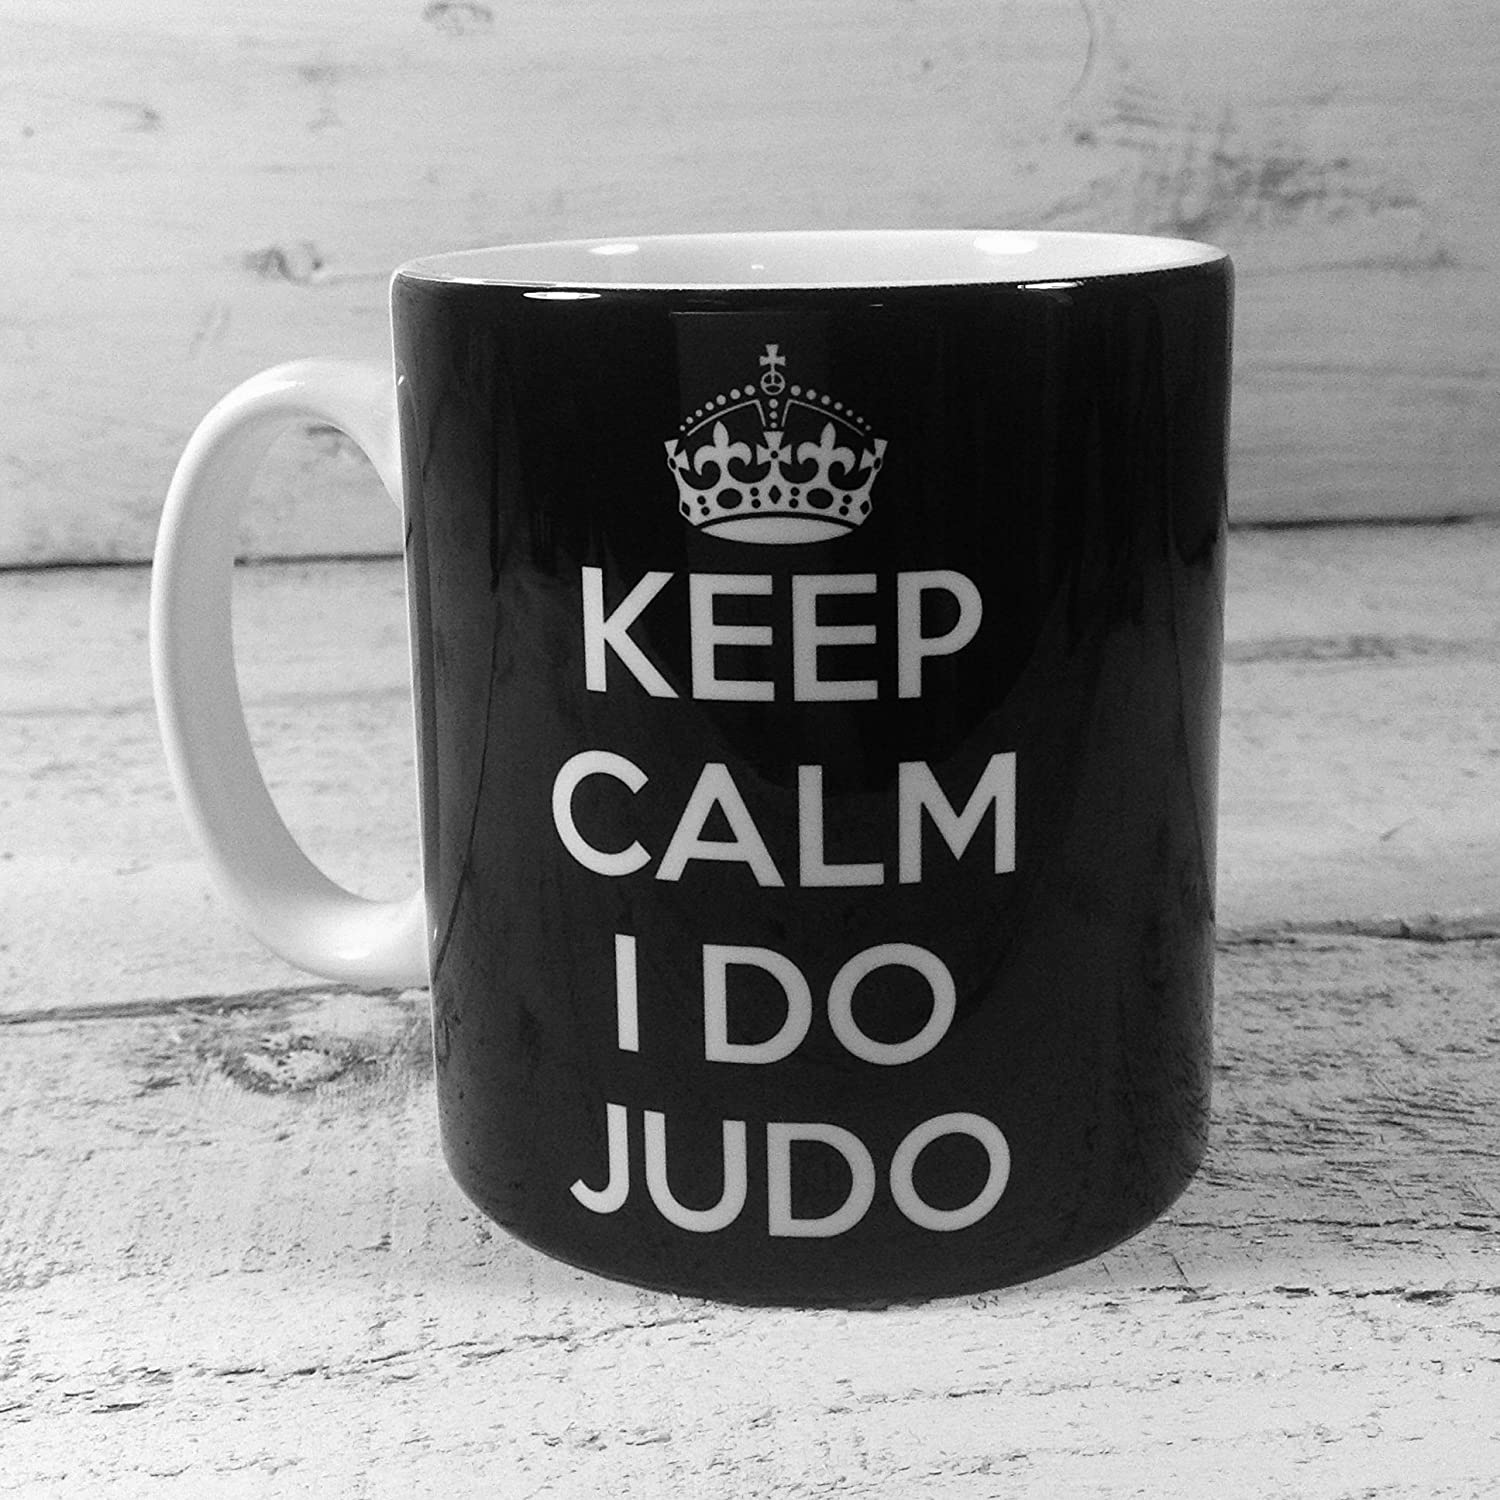 KEEP CALM I DO JUDO Mug 11oz Cup